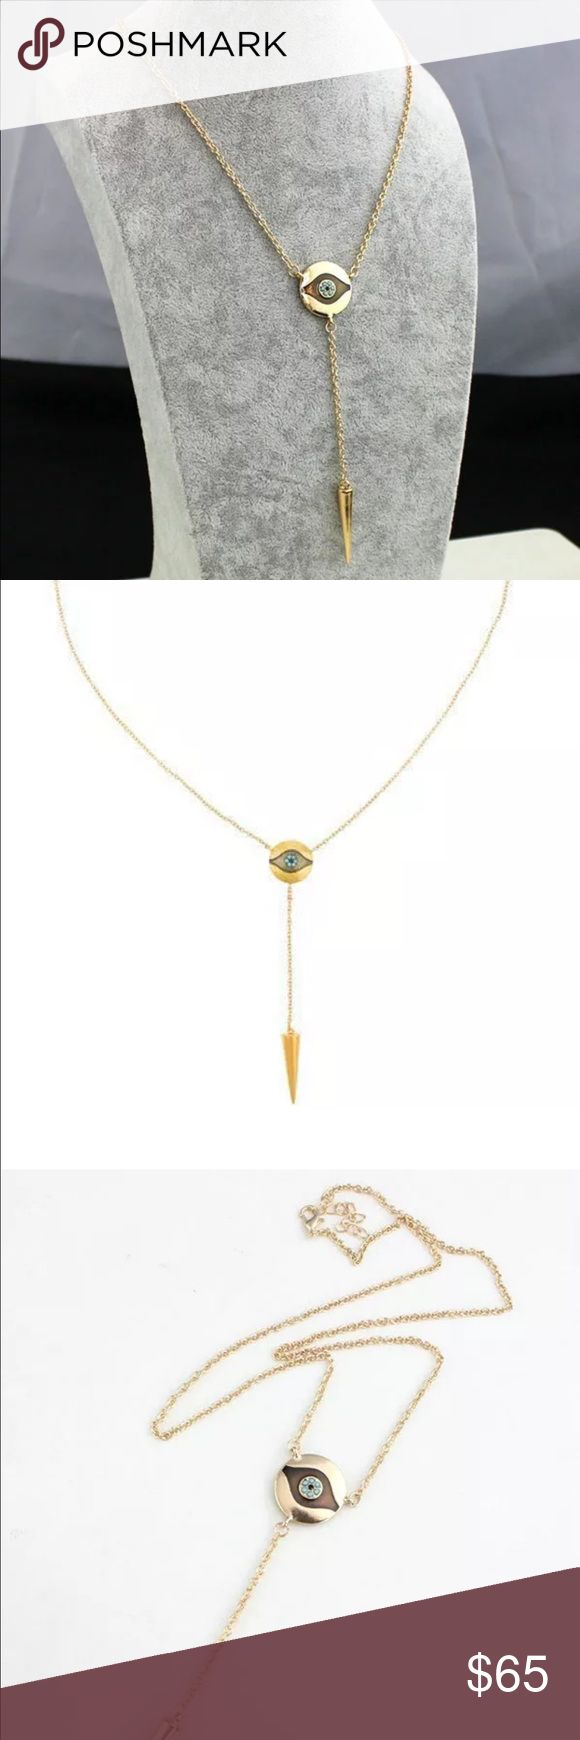 Eye Pendent Necklace Gold pendent protection eye drop spike necklace. 18k gold plated. HOLIDAY SALE HOLIDAY SALE Bundle 2 or more items to receive 30% off Jewelry Necklaces